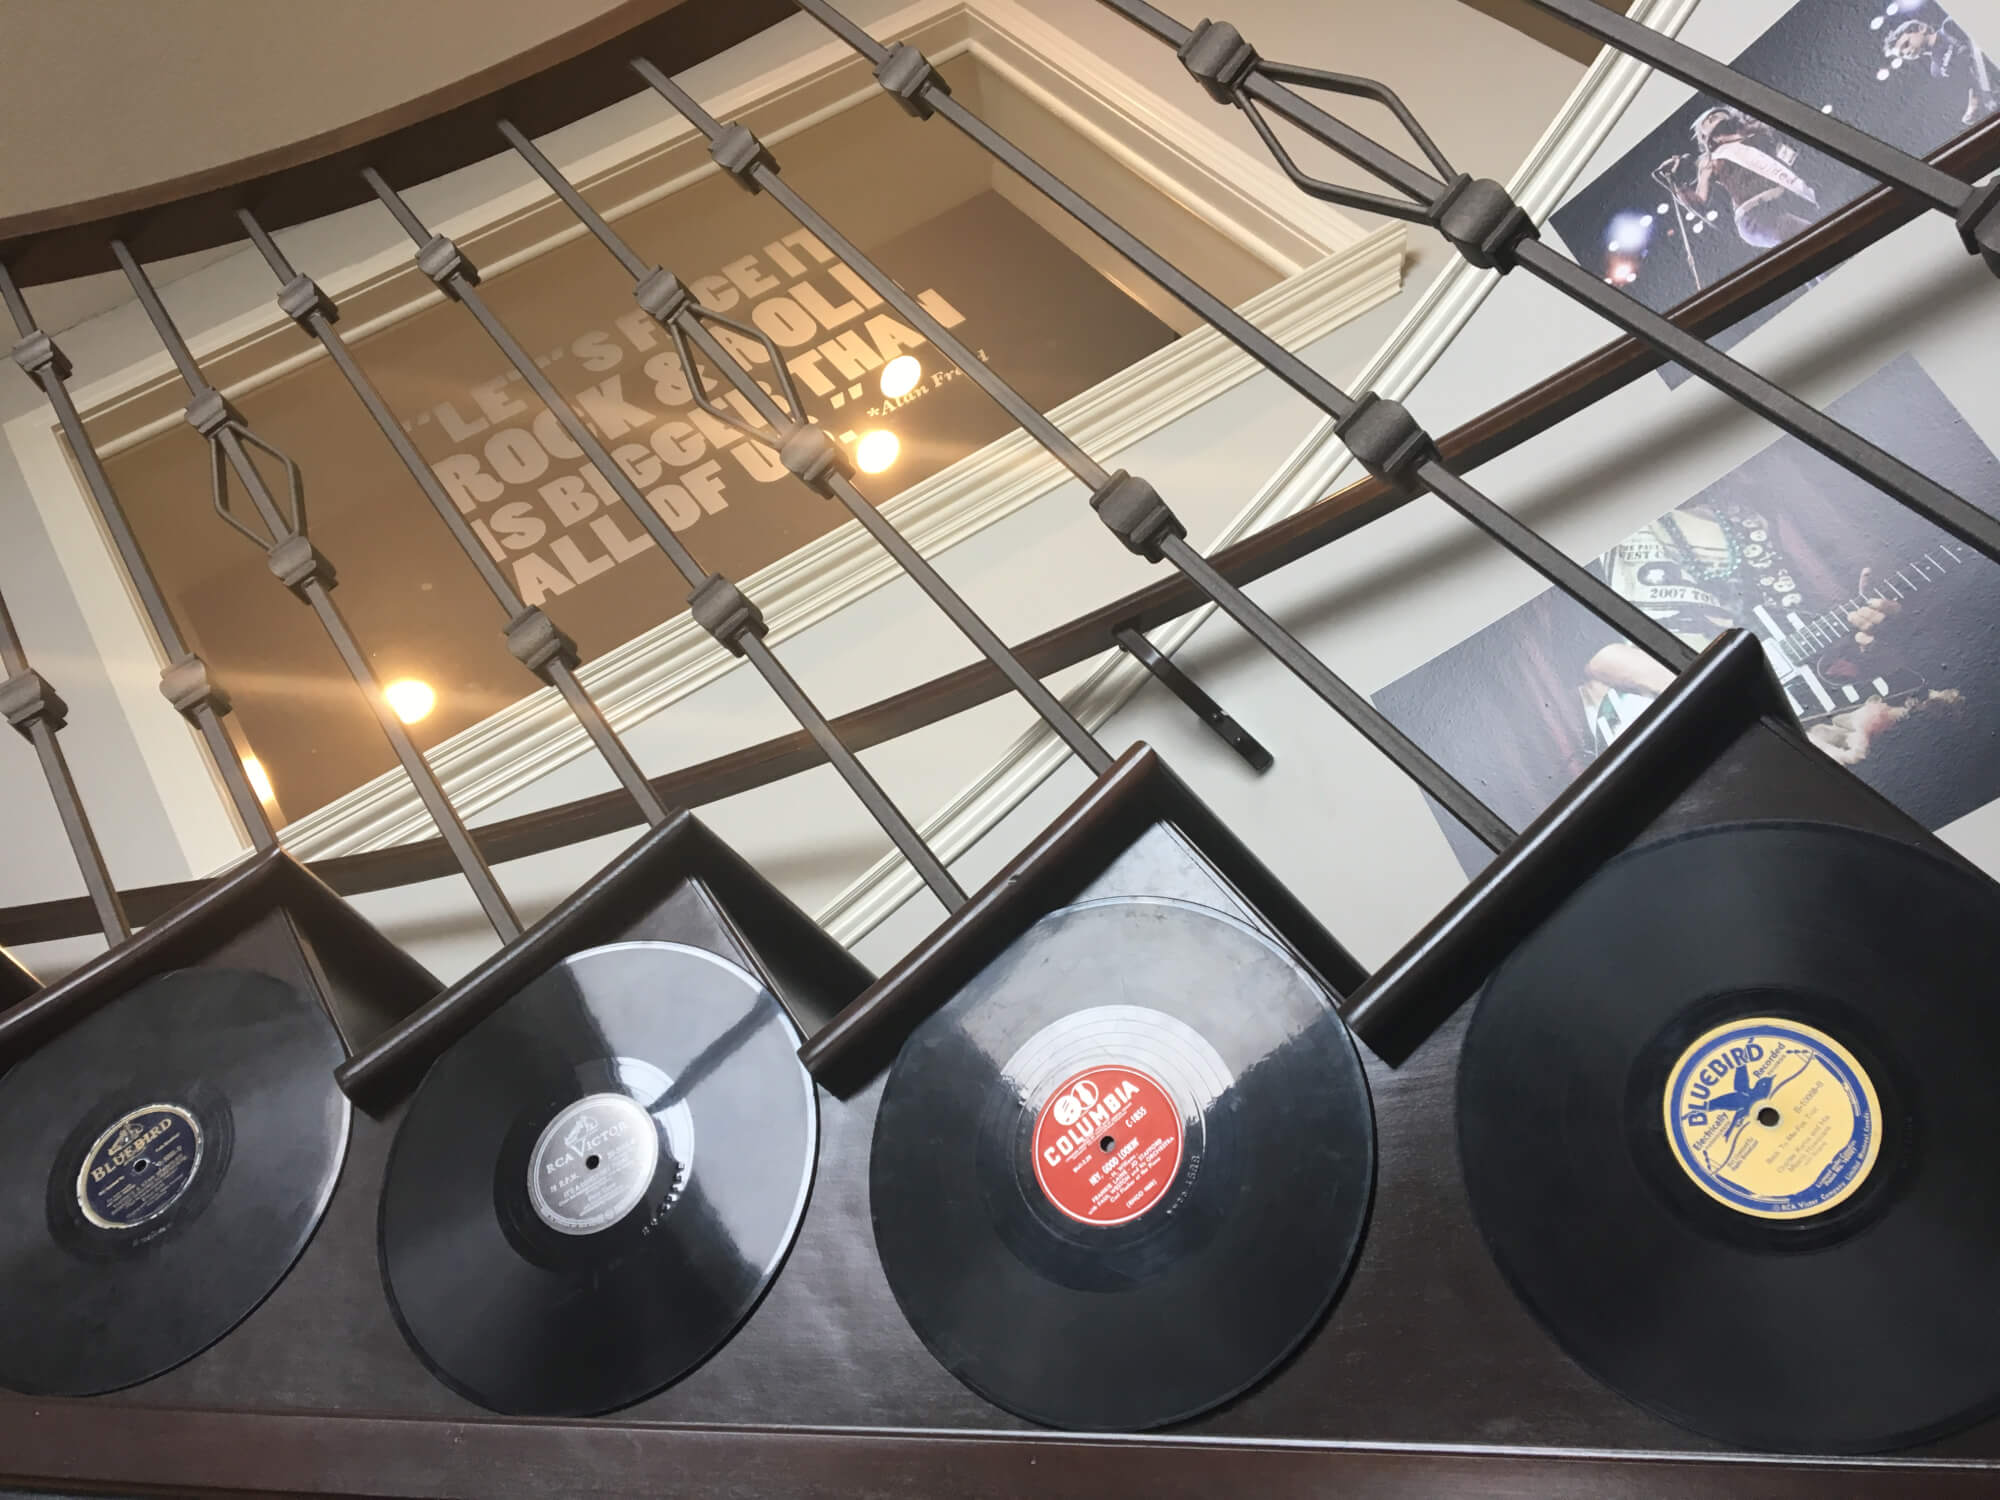 Are those records? Yes! We've decorated our School of Rock Calgary South to show off a bit of the history of music